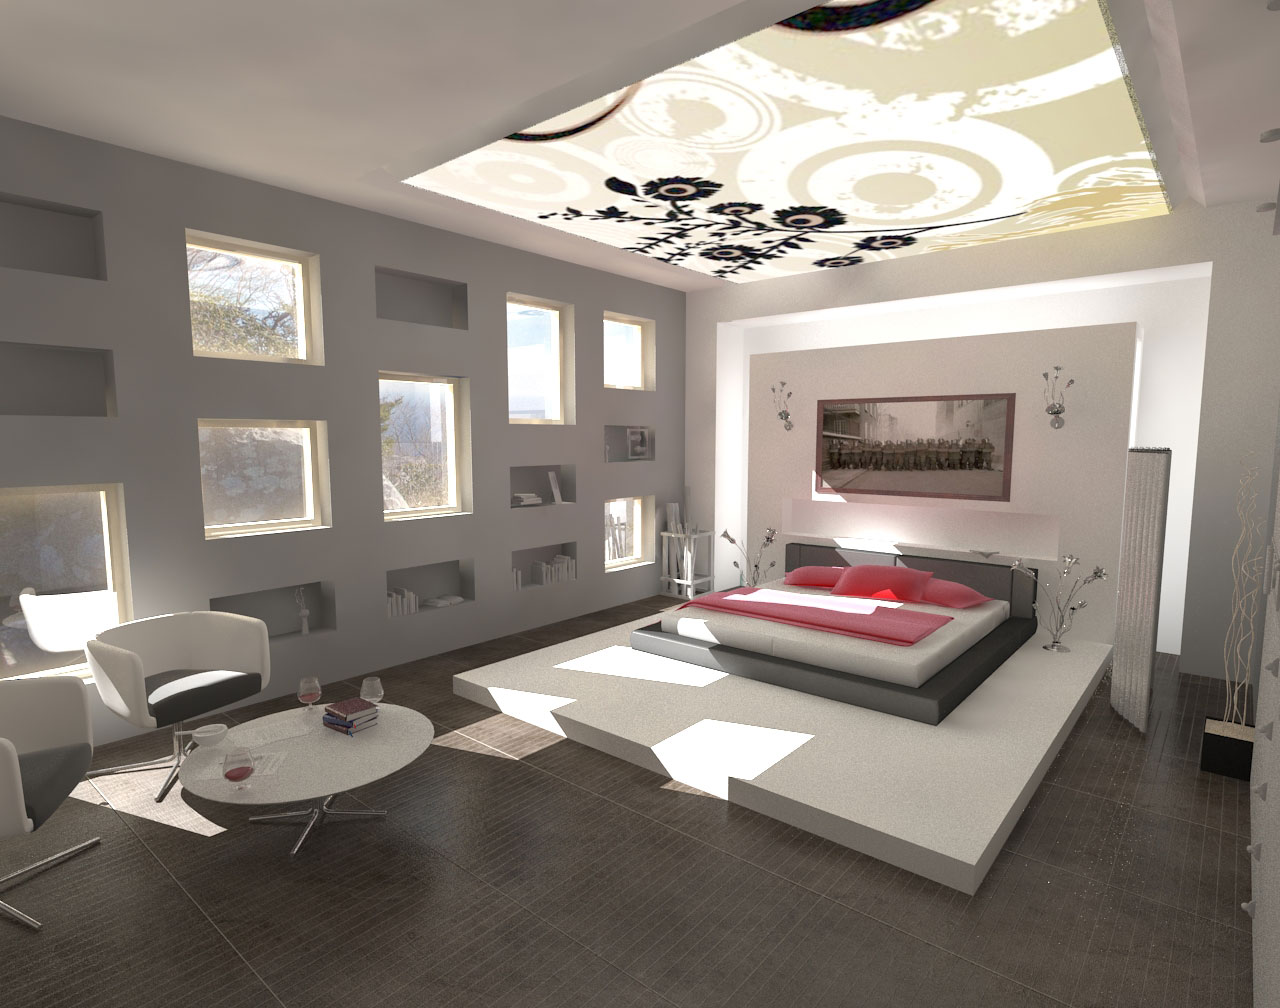 Magnificent Modern Bedroom Interior Design Ideas 1280 x 1008 · 183 kB · jpeg